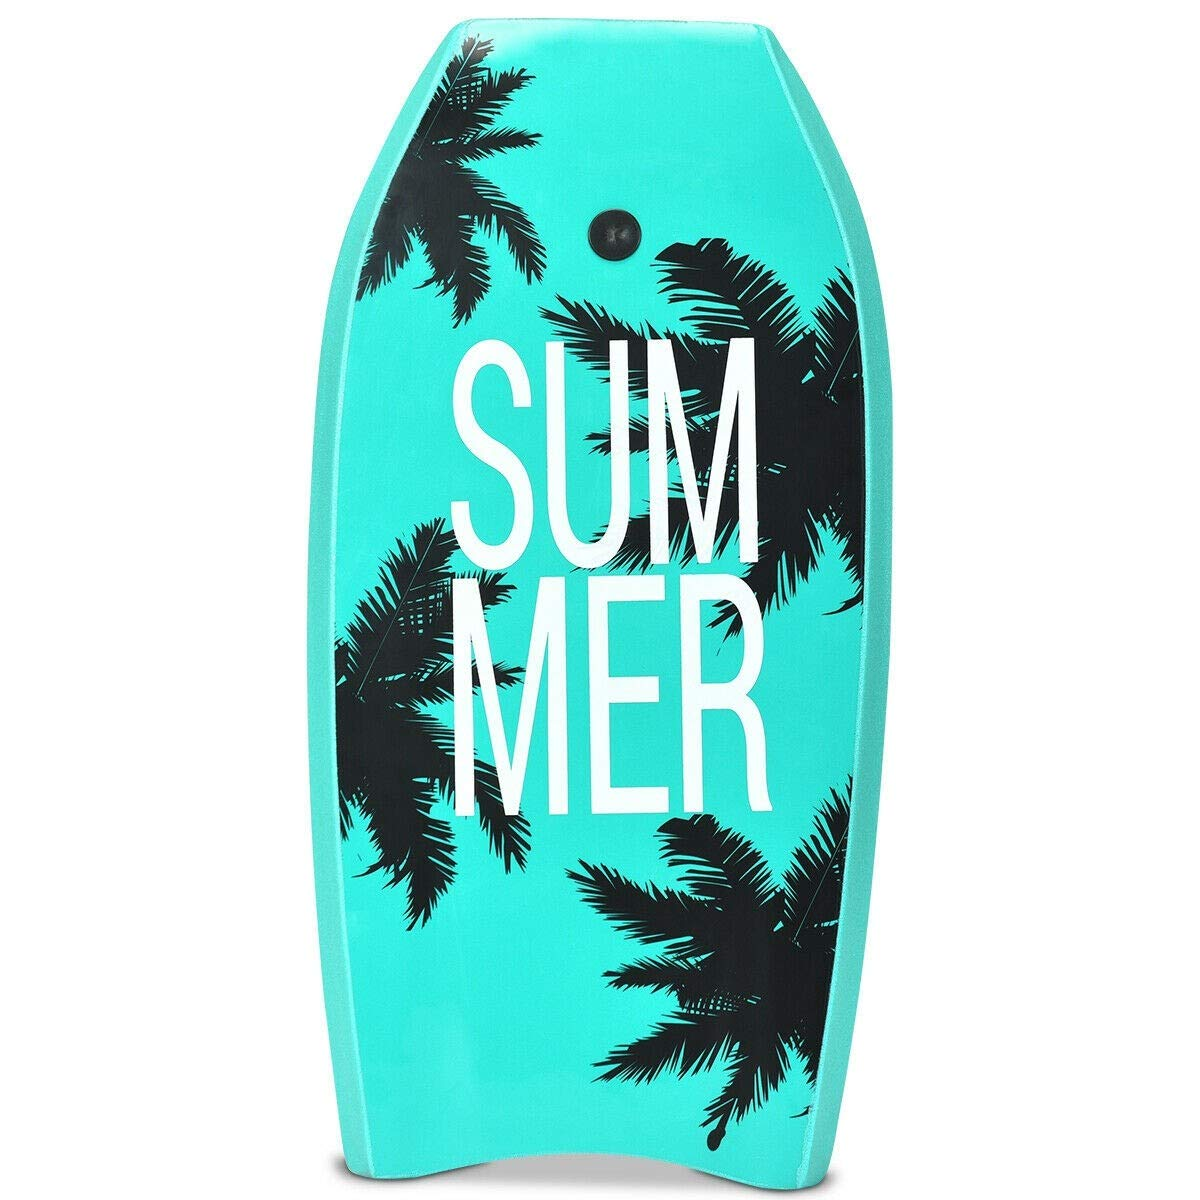 Snow Shop Everything Wonderful Experience of Riding a Wave with Lightweight Super Bodyboard Surfing with EPS Core Boarding, Green, 33 inches x 19 inches x 2.36 inches by Snow Shop Everything